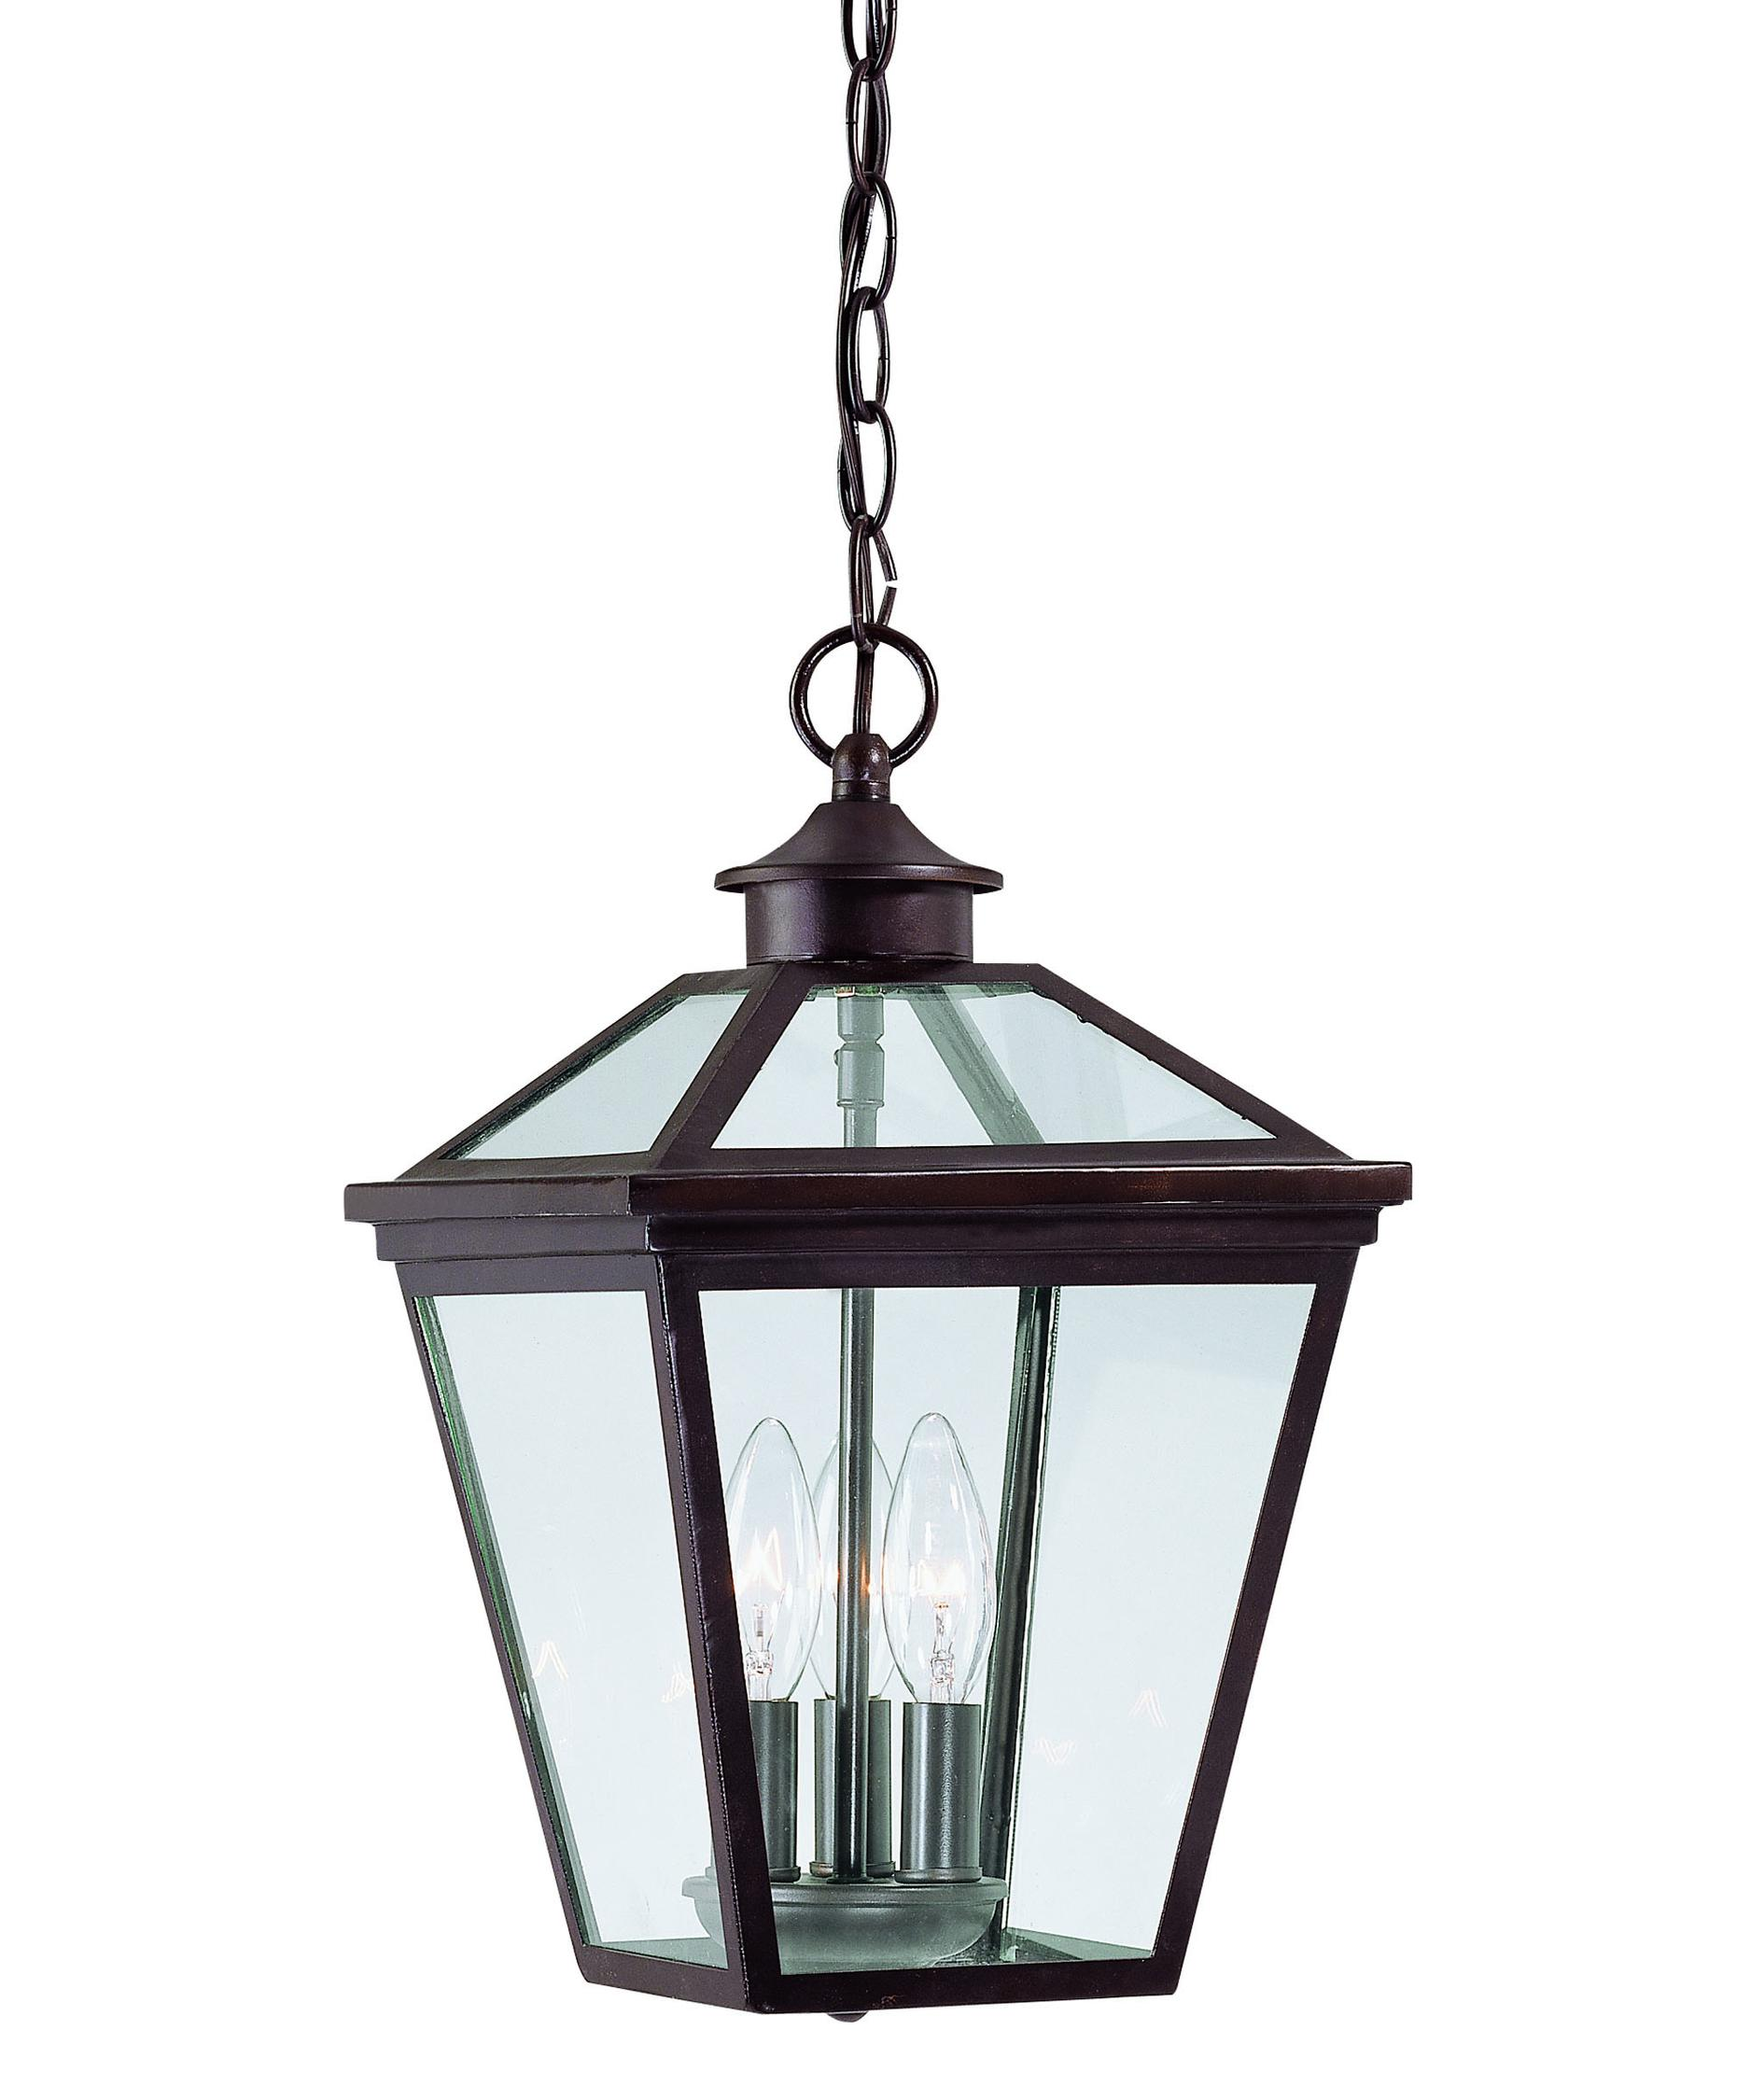 Outdoor hanging lighting - Shown In English Bronze Finish And Clear Glass